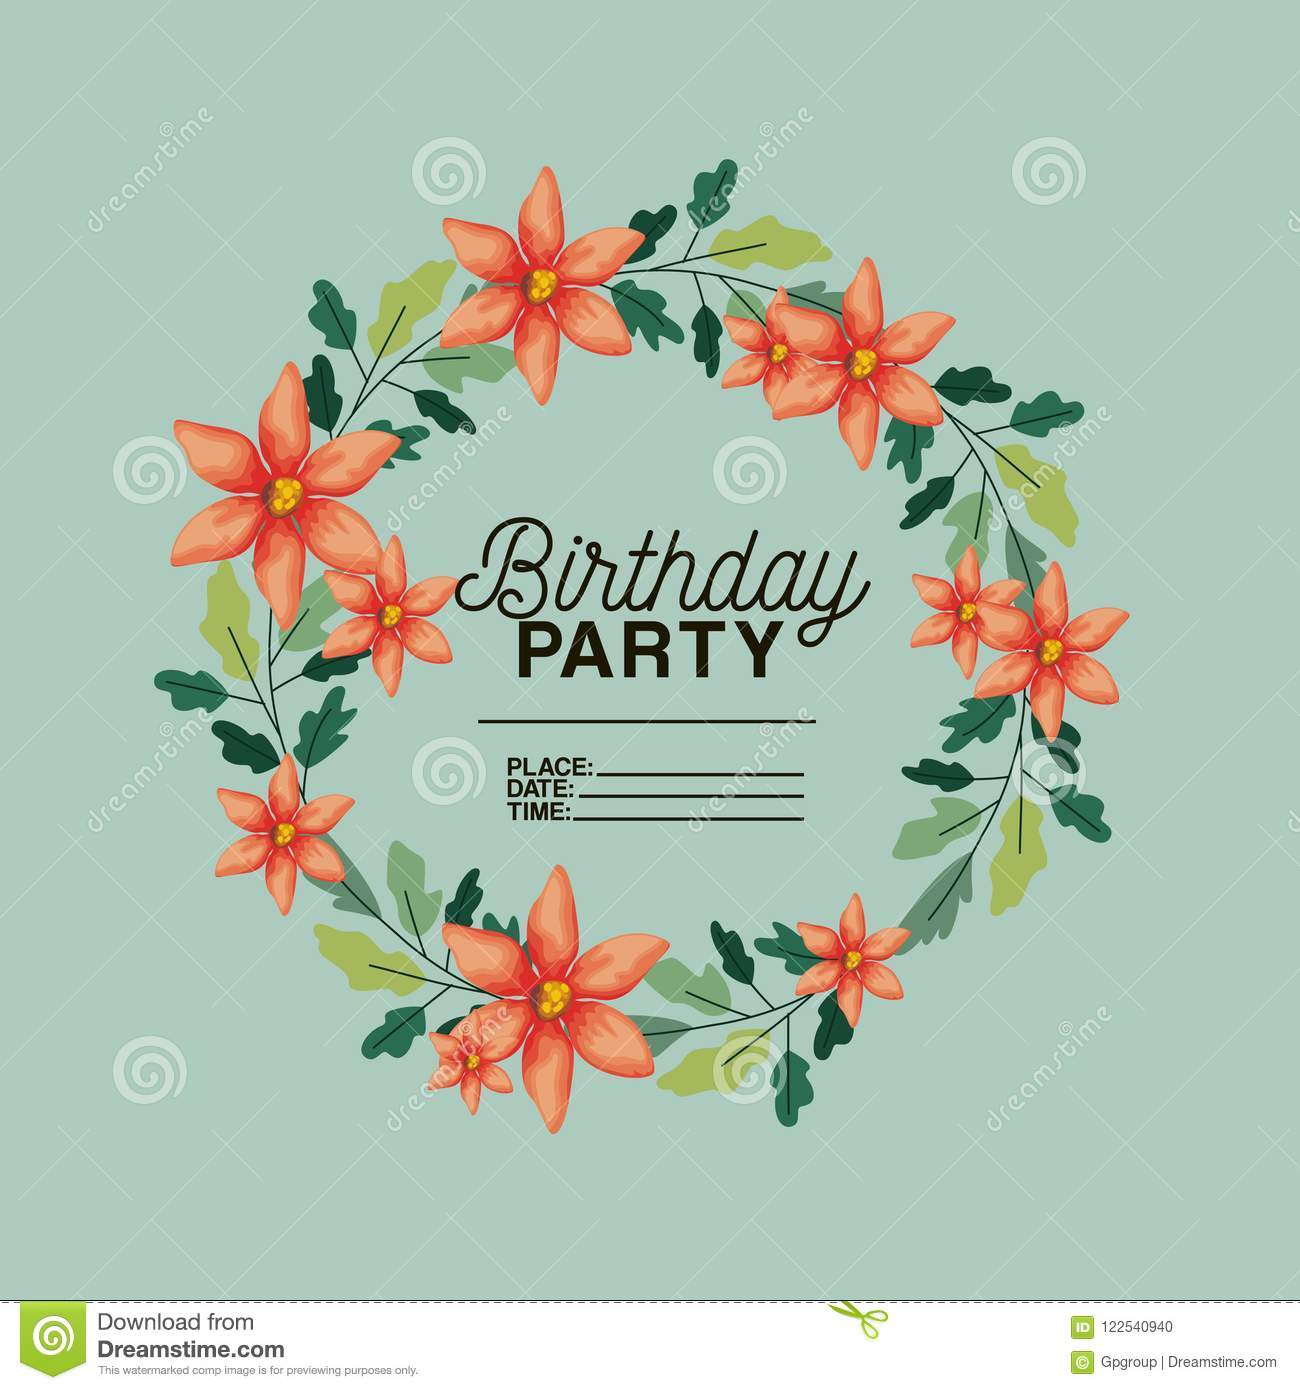 Birthday Party Invitation With Floral Crown Stock Vector